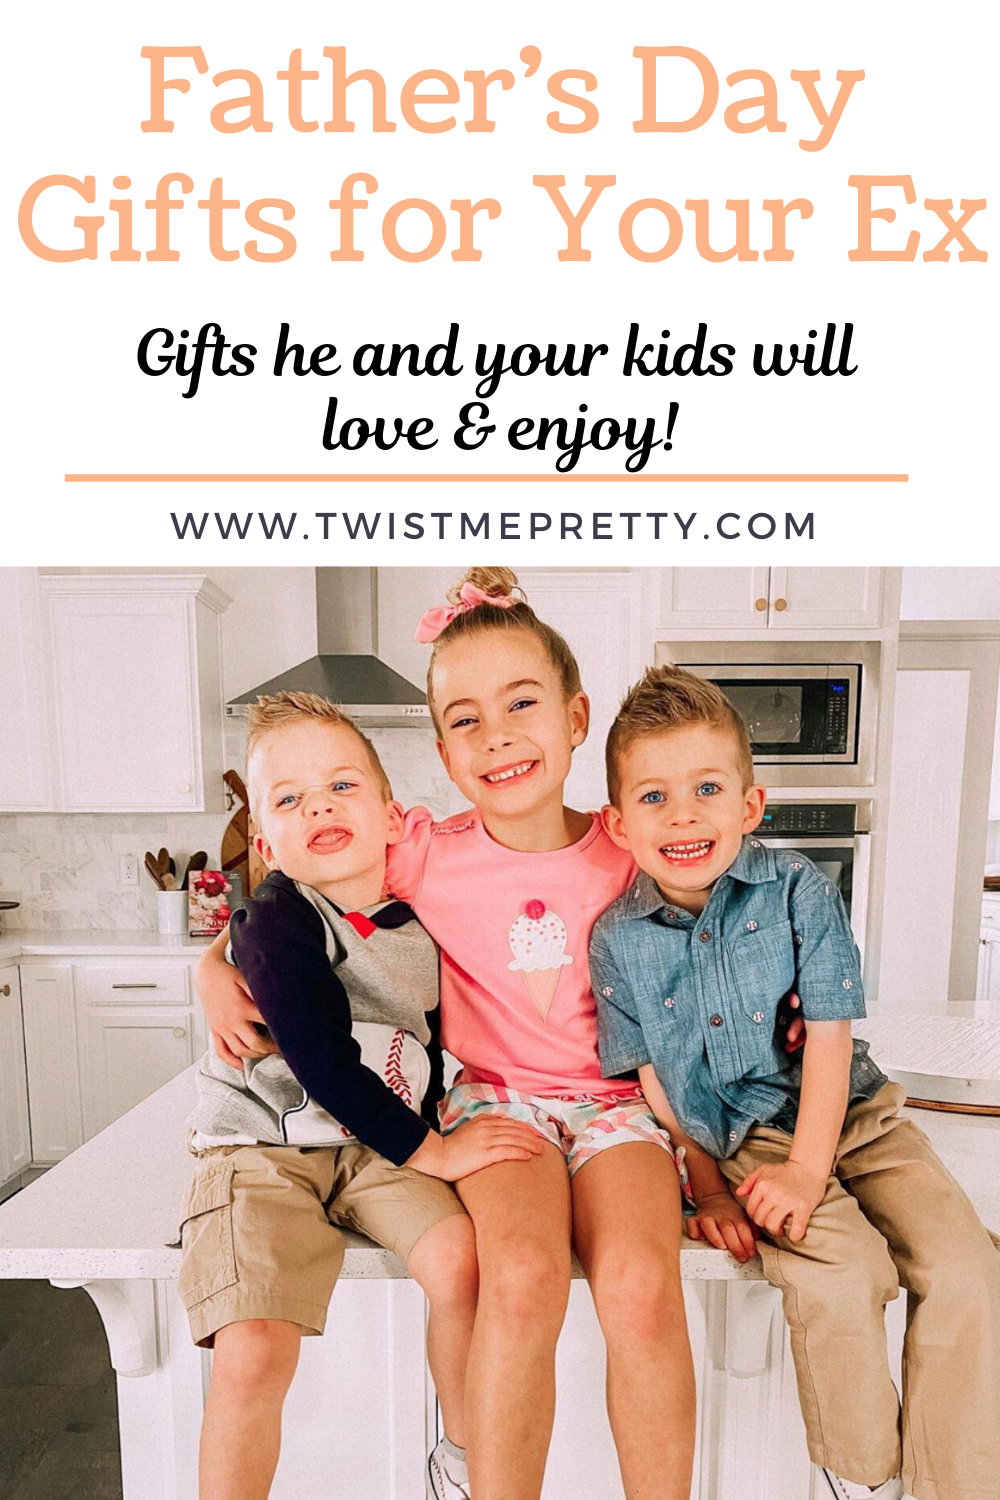 Father's Day Gifts that your Ex and your kids will love and enjoy. www.twistmepretty.com